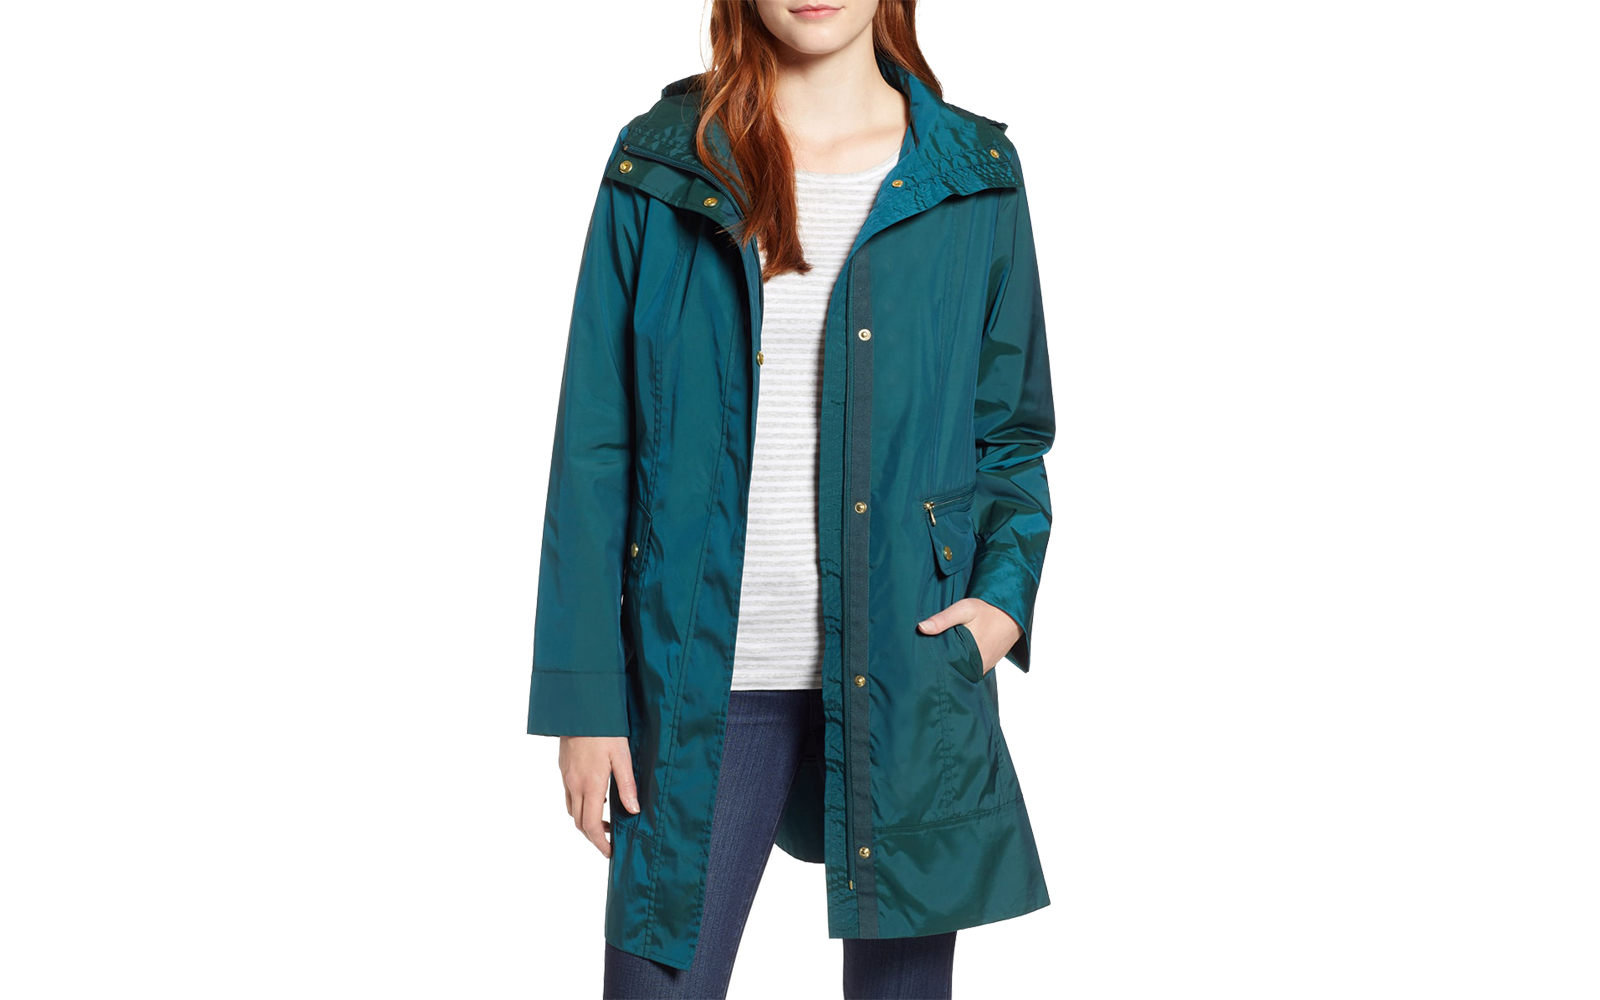 14 Best Women's Rain Jackets, According to Customers